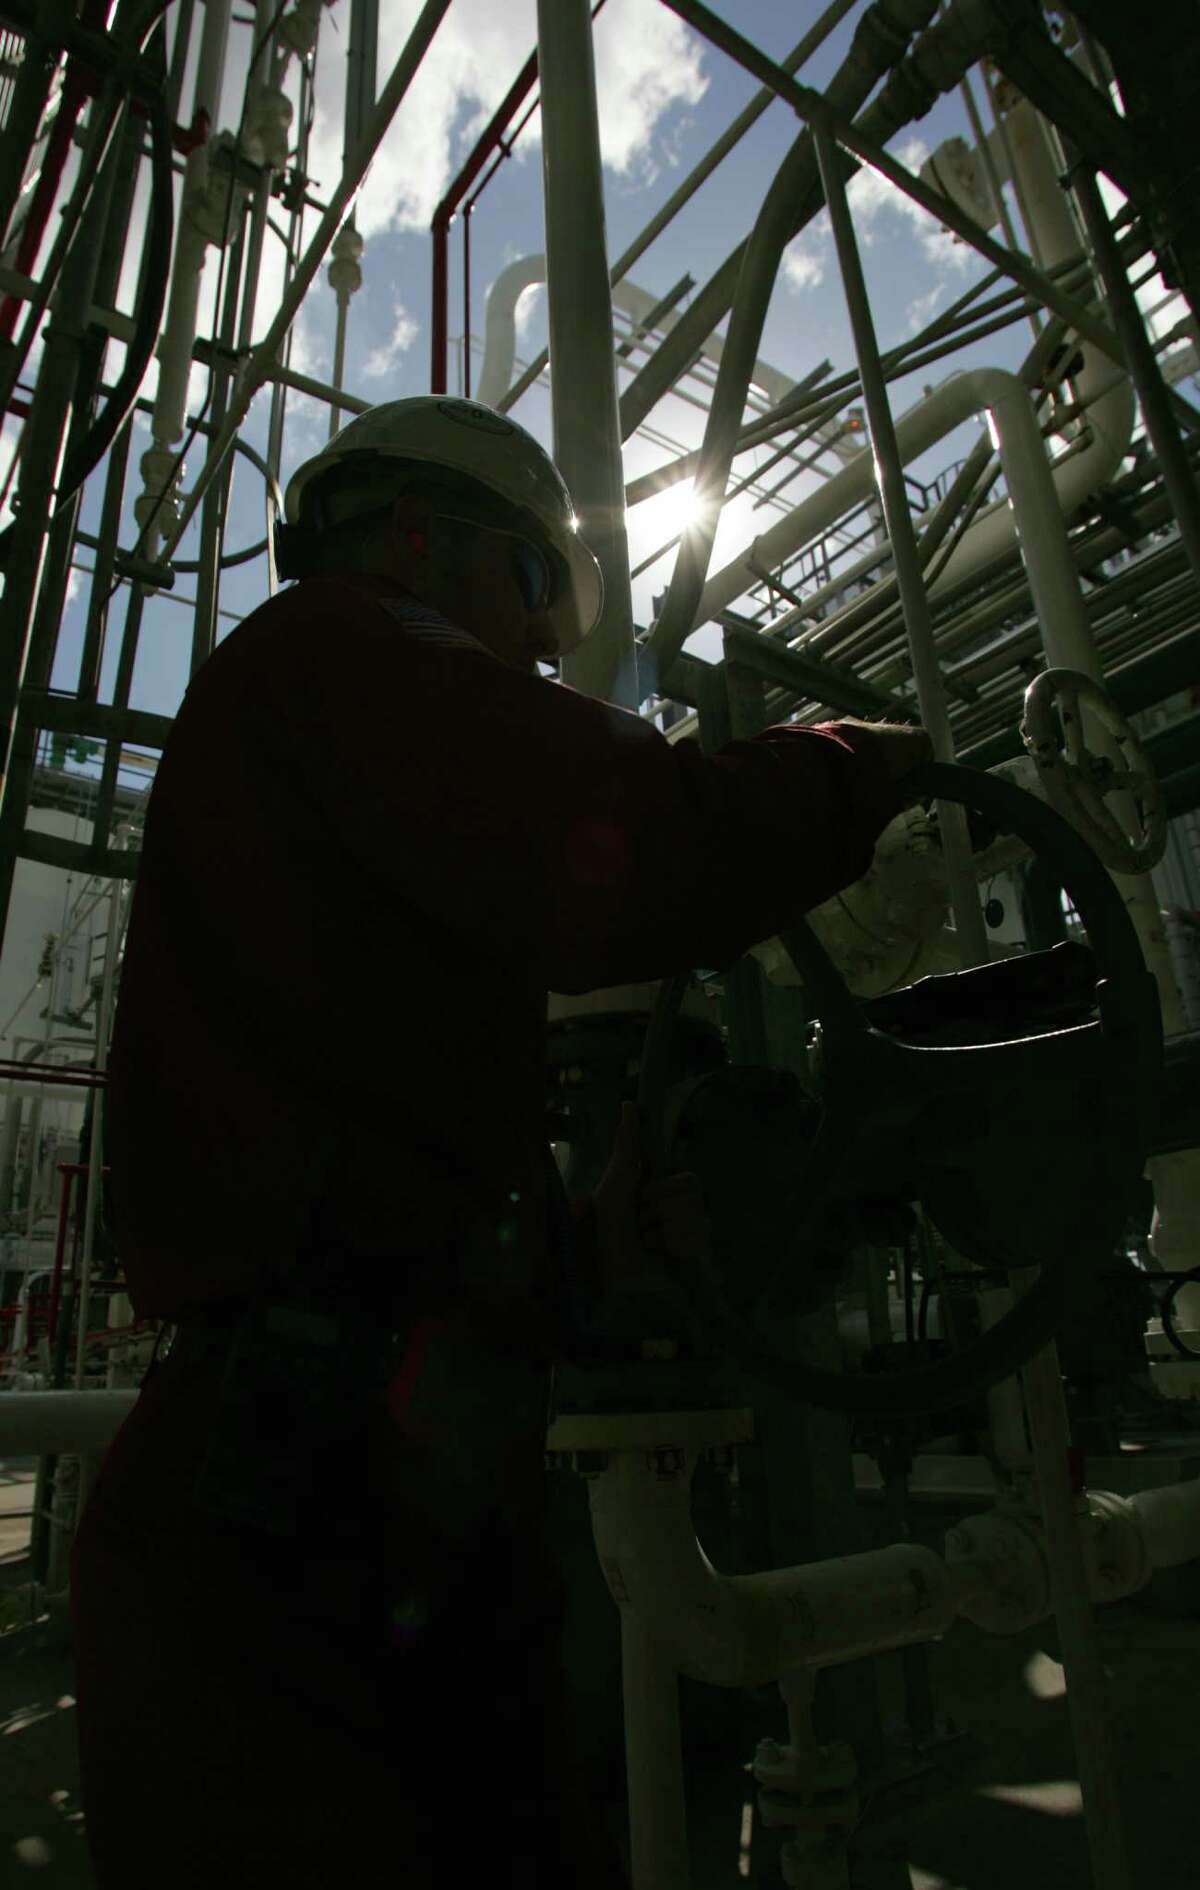 A LyondellBasell worker makes a valve adjustment in Pasadena. LyondellBasell has completed expansion of a Channelview plant.